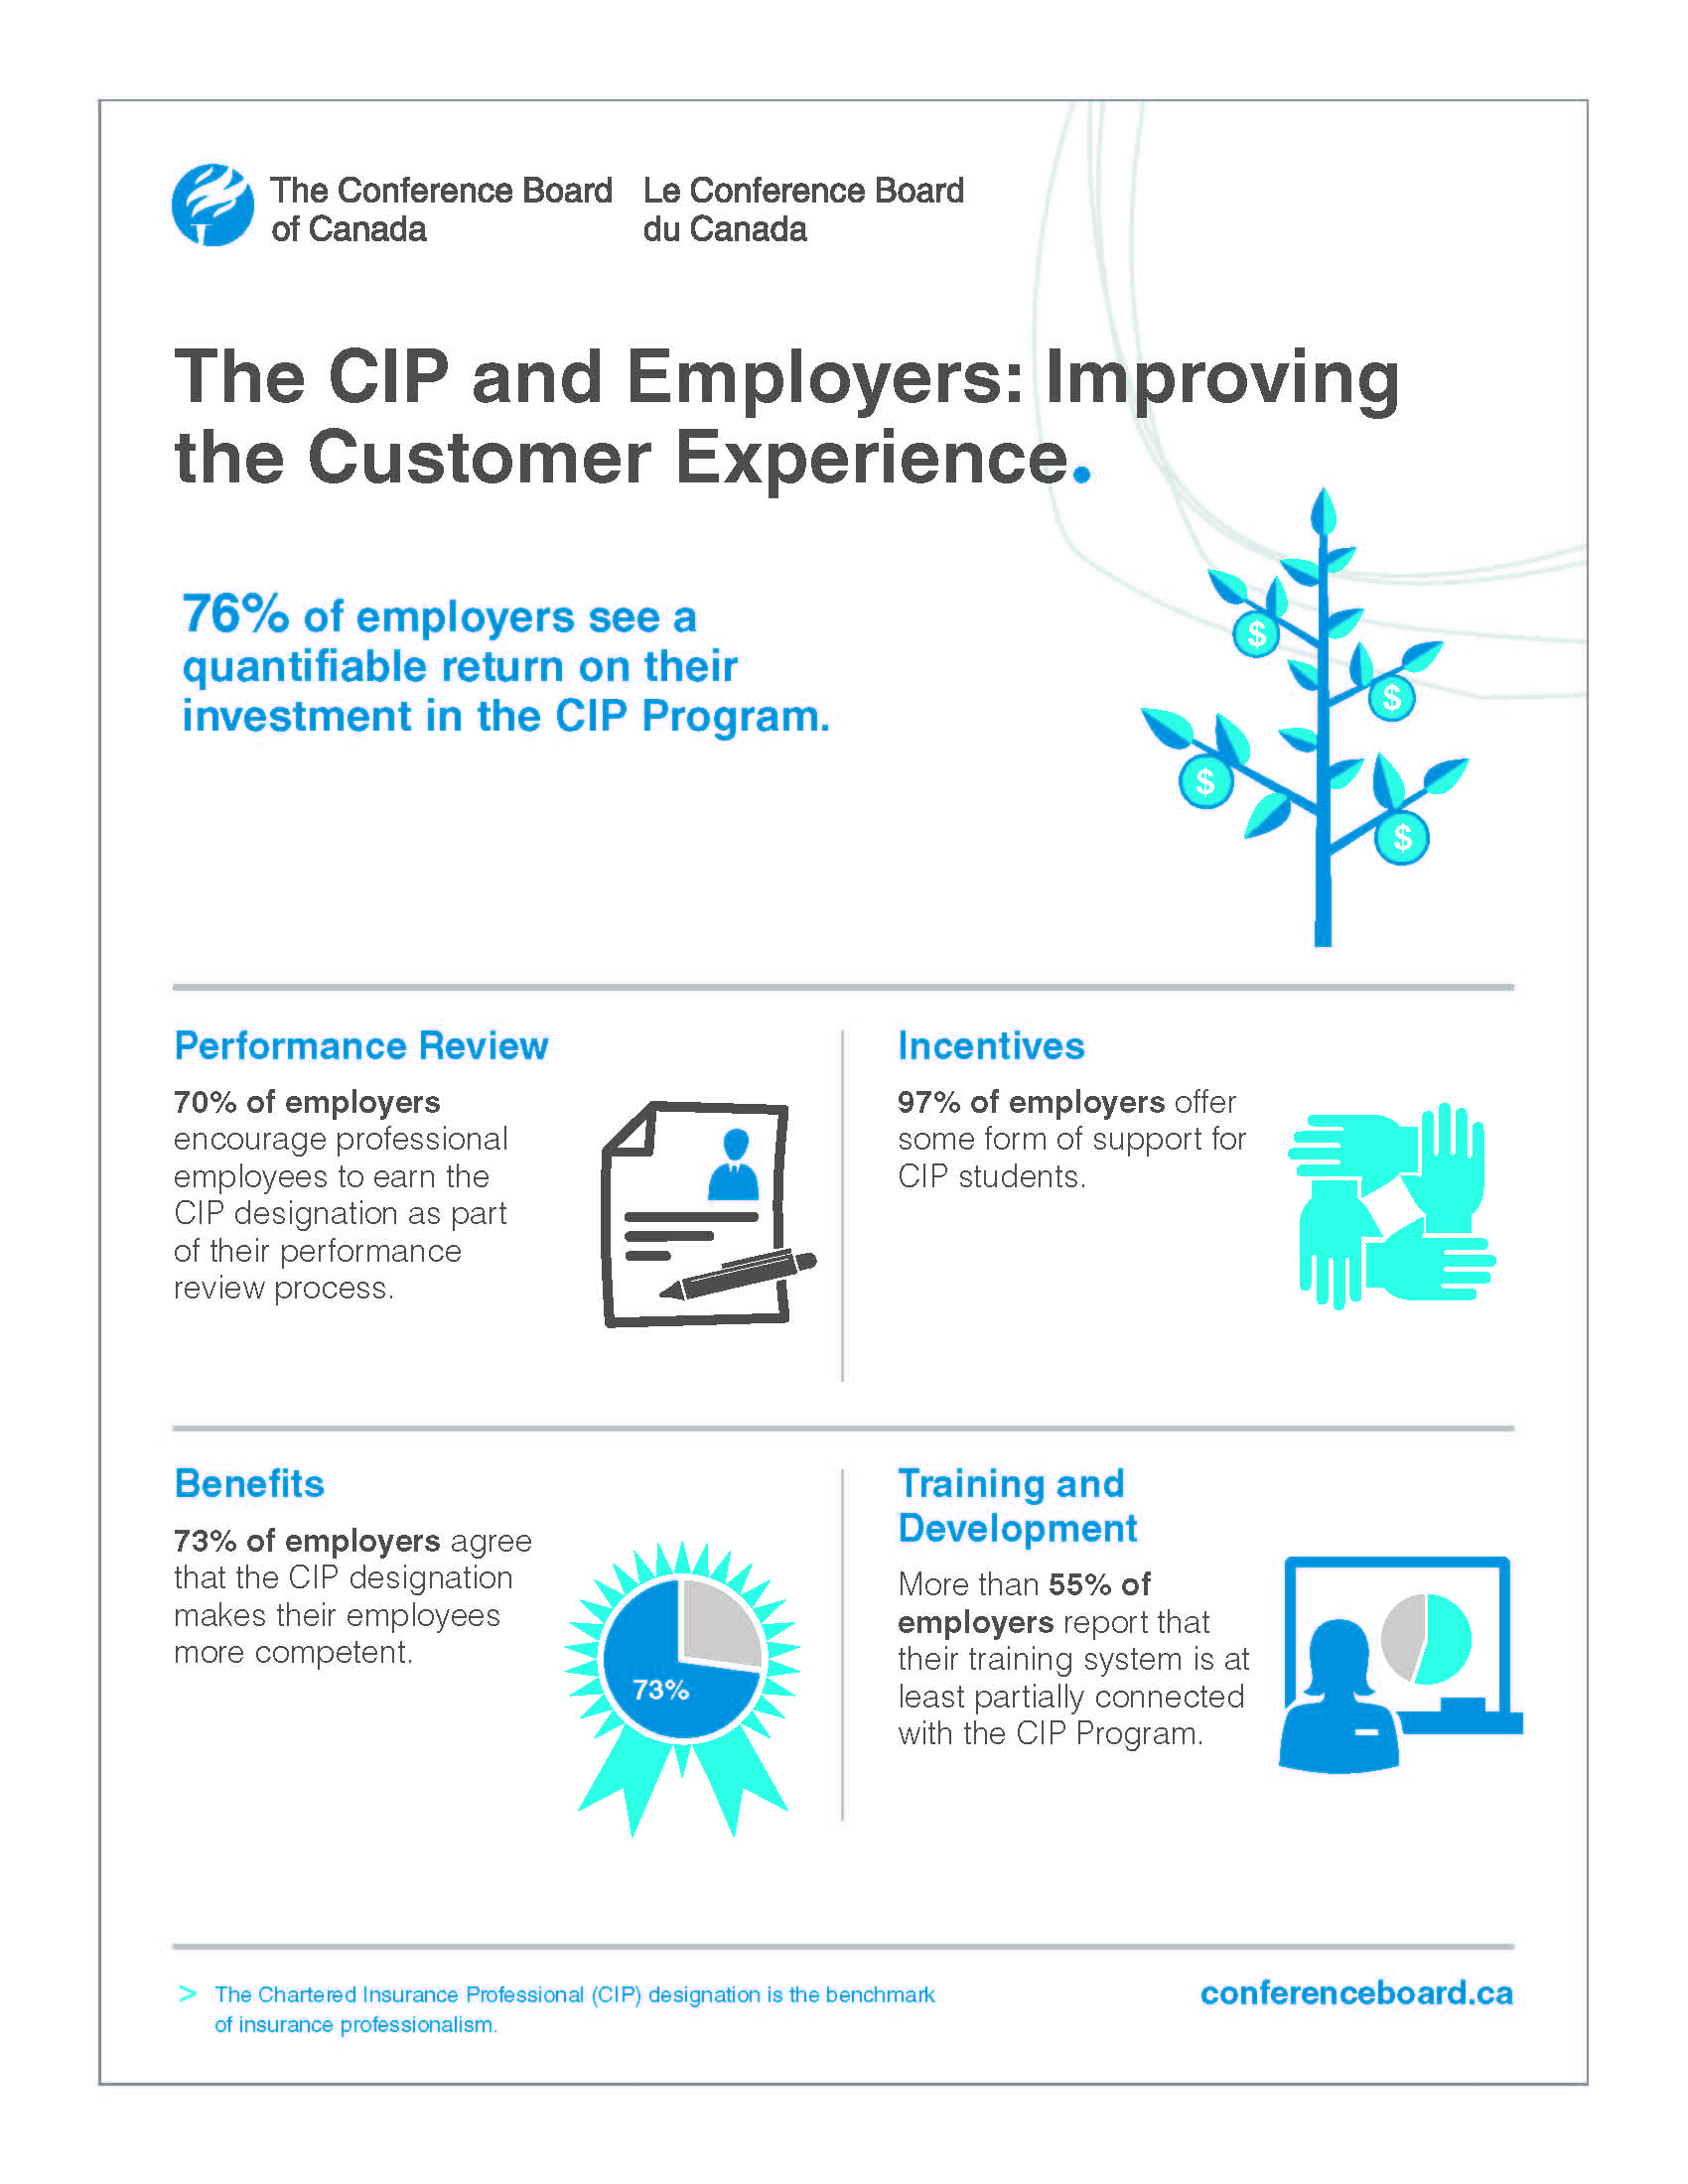 Image links to CIP and Employment page